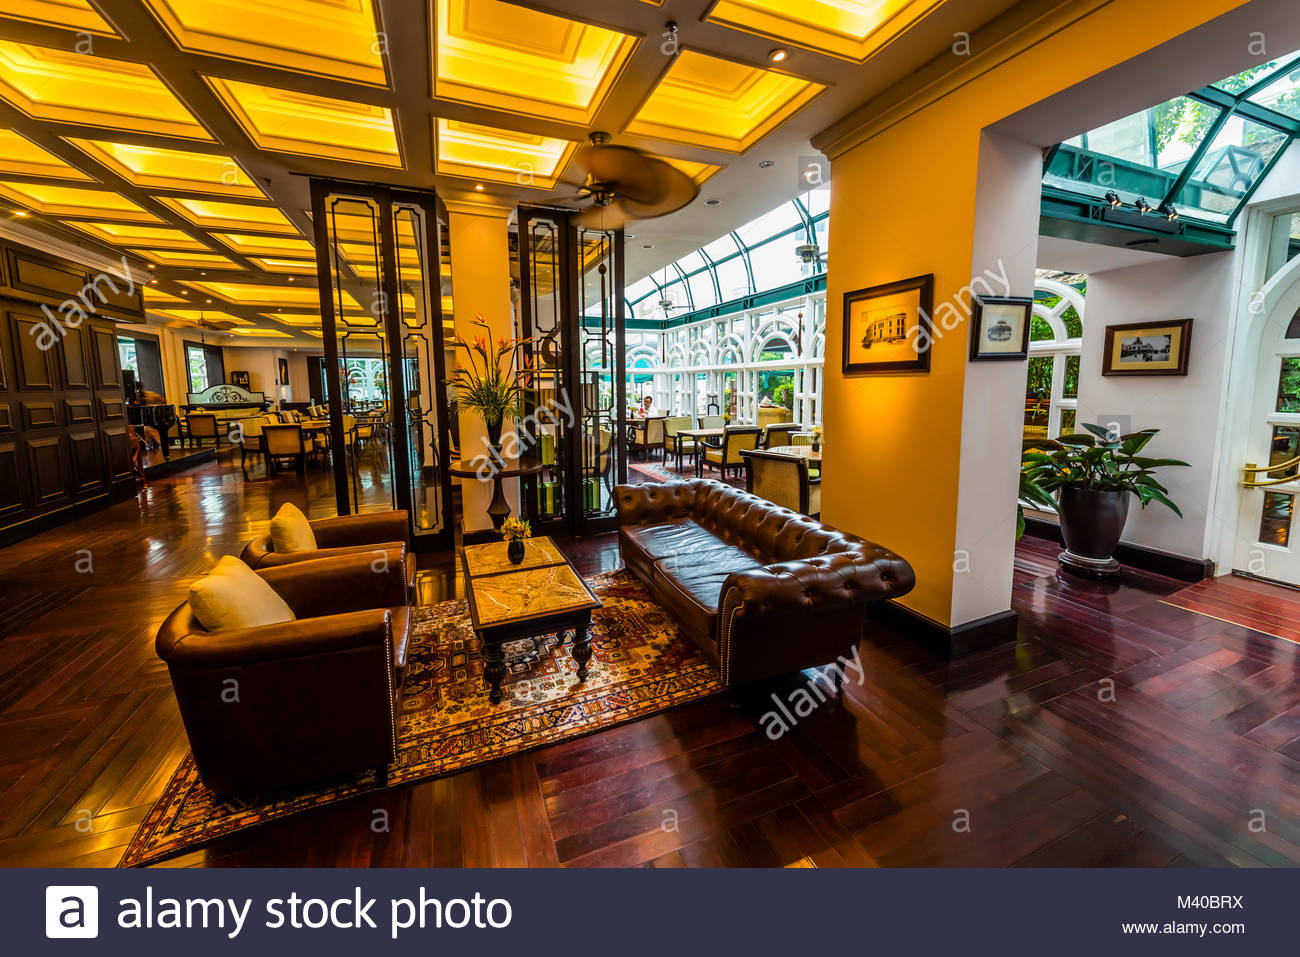 Sofitel Legend Metropole Hanoi is a 5 star historic luxury hotel opened in 1901 in the French colonial style. Hanoi, - Stock Image